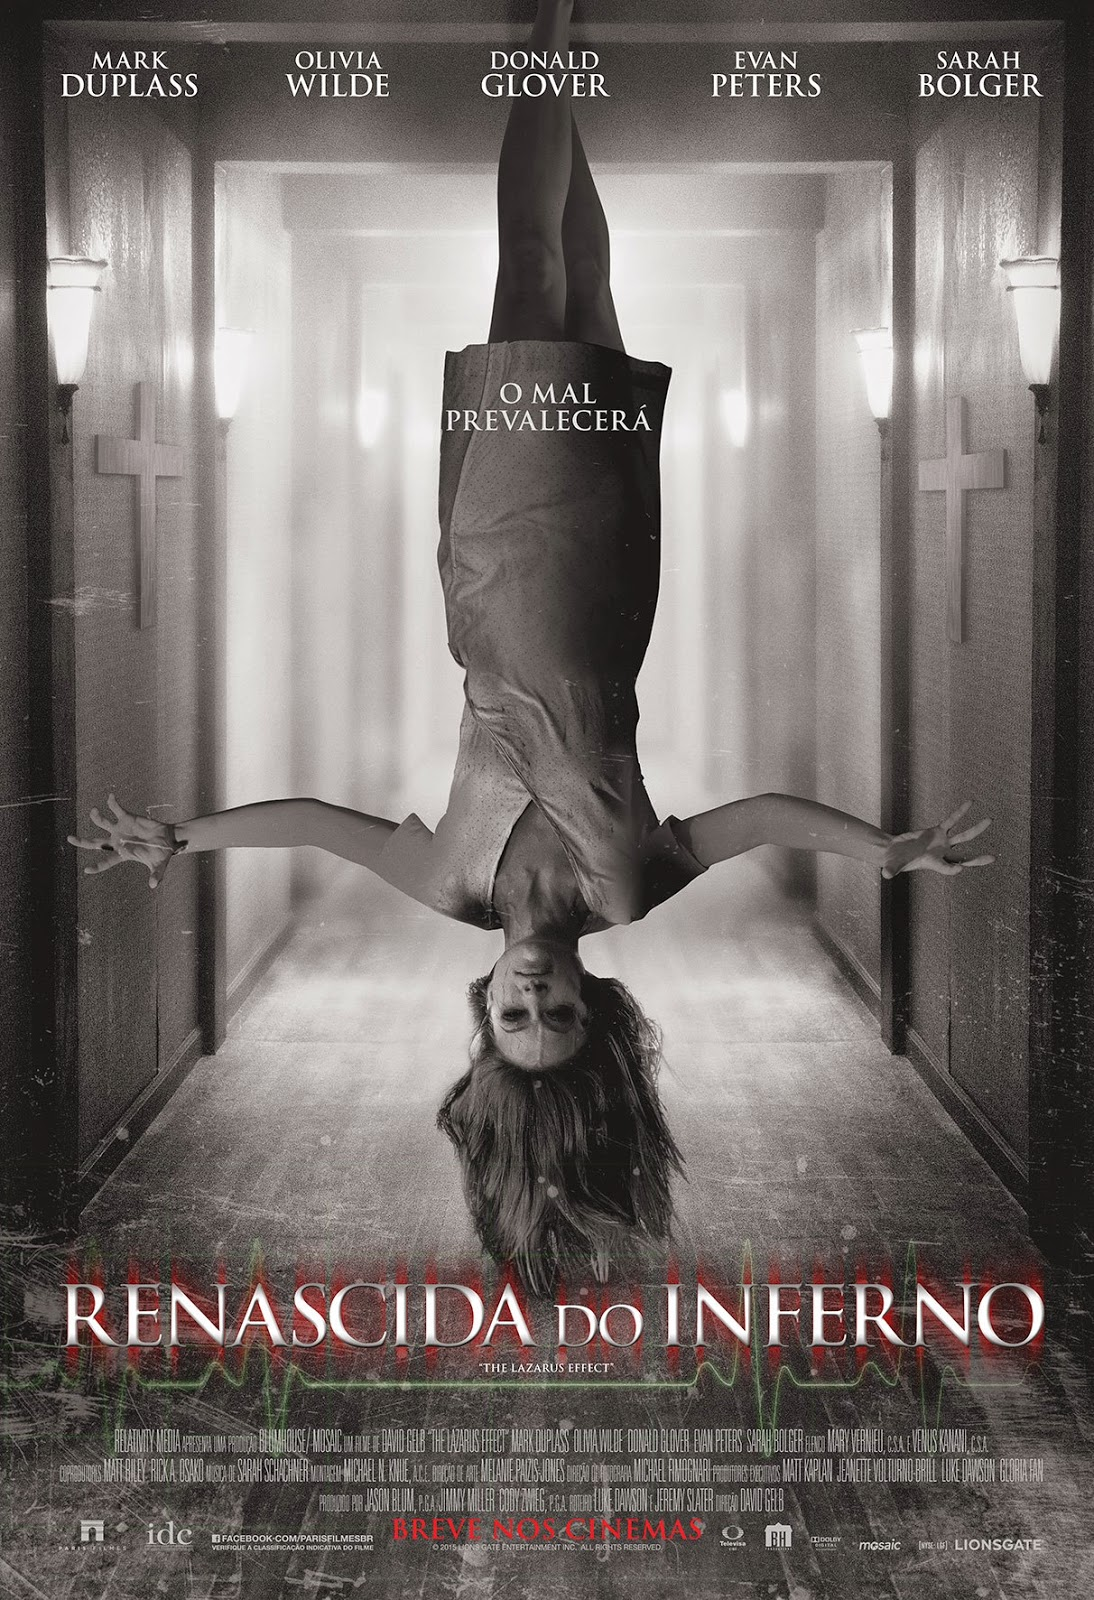 Pôster/capa/cartaz nacional de RENASCIDA DO INFERNO (The Lazarus Effect)